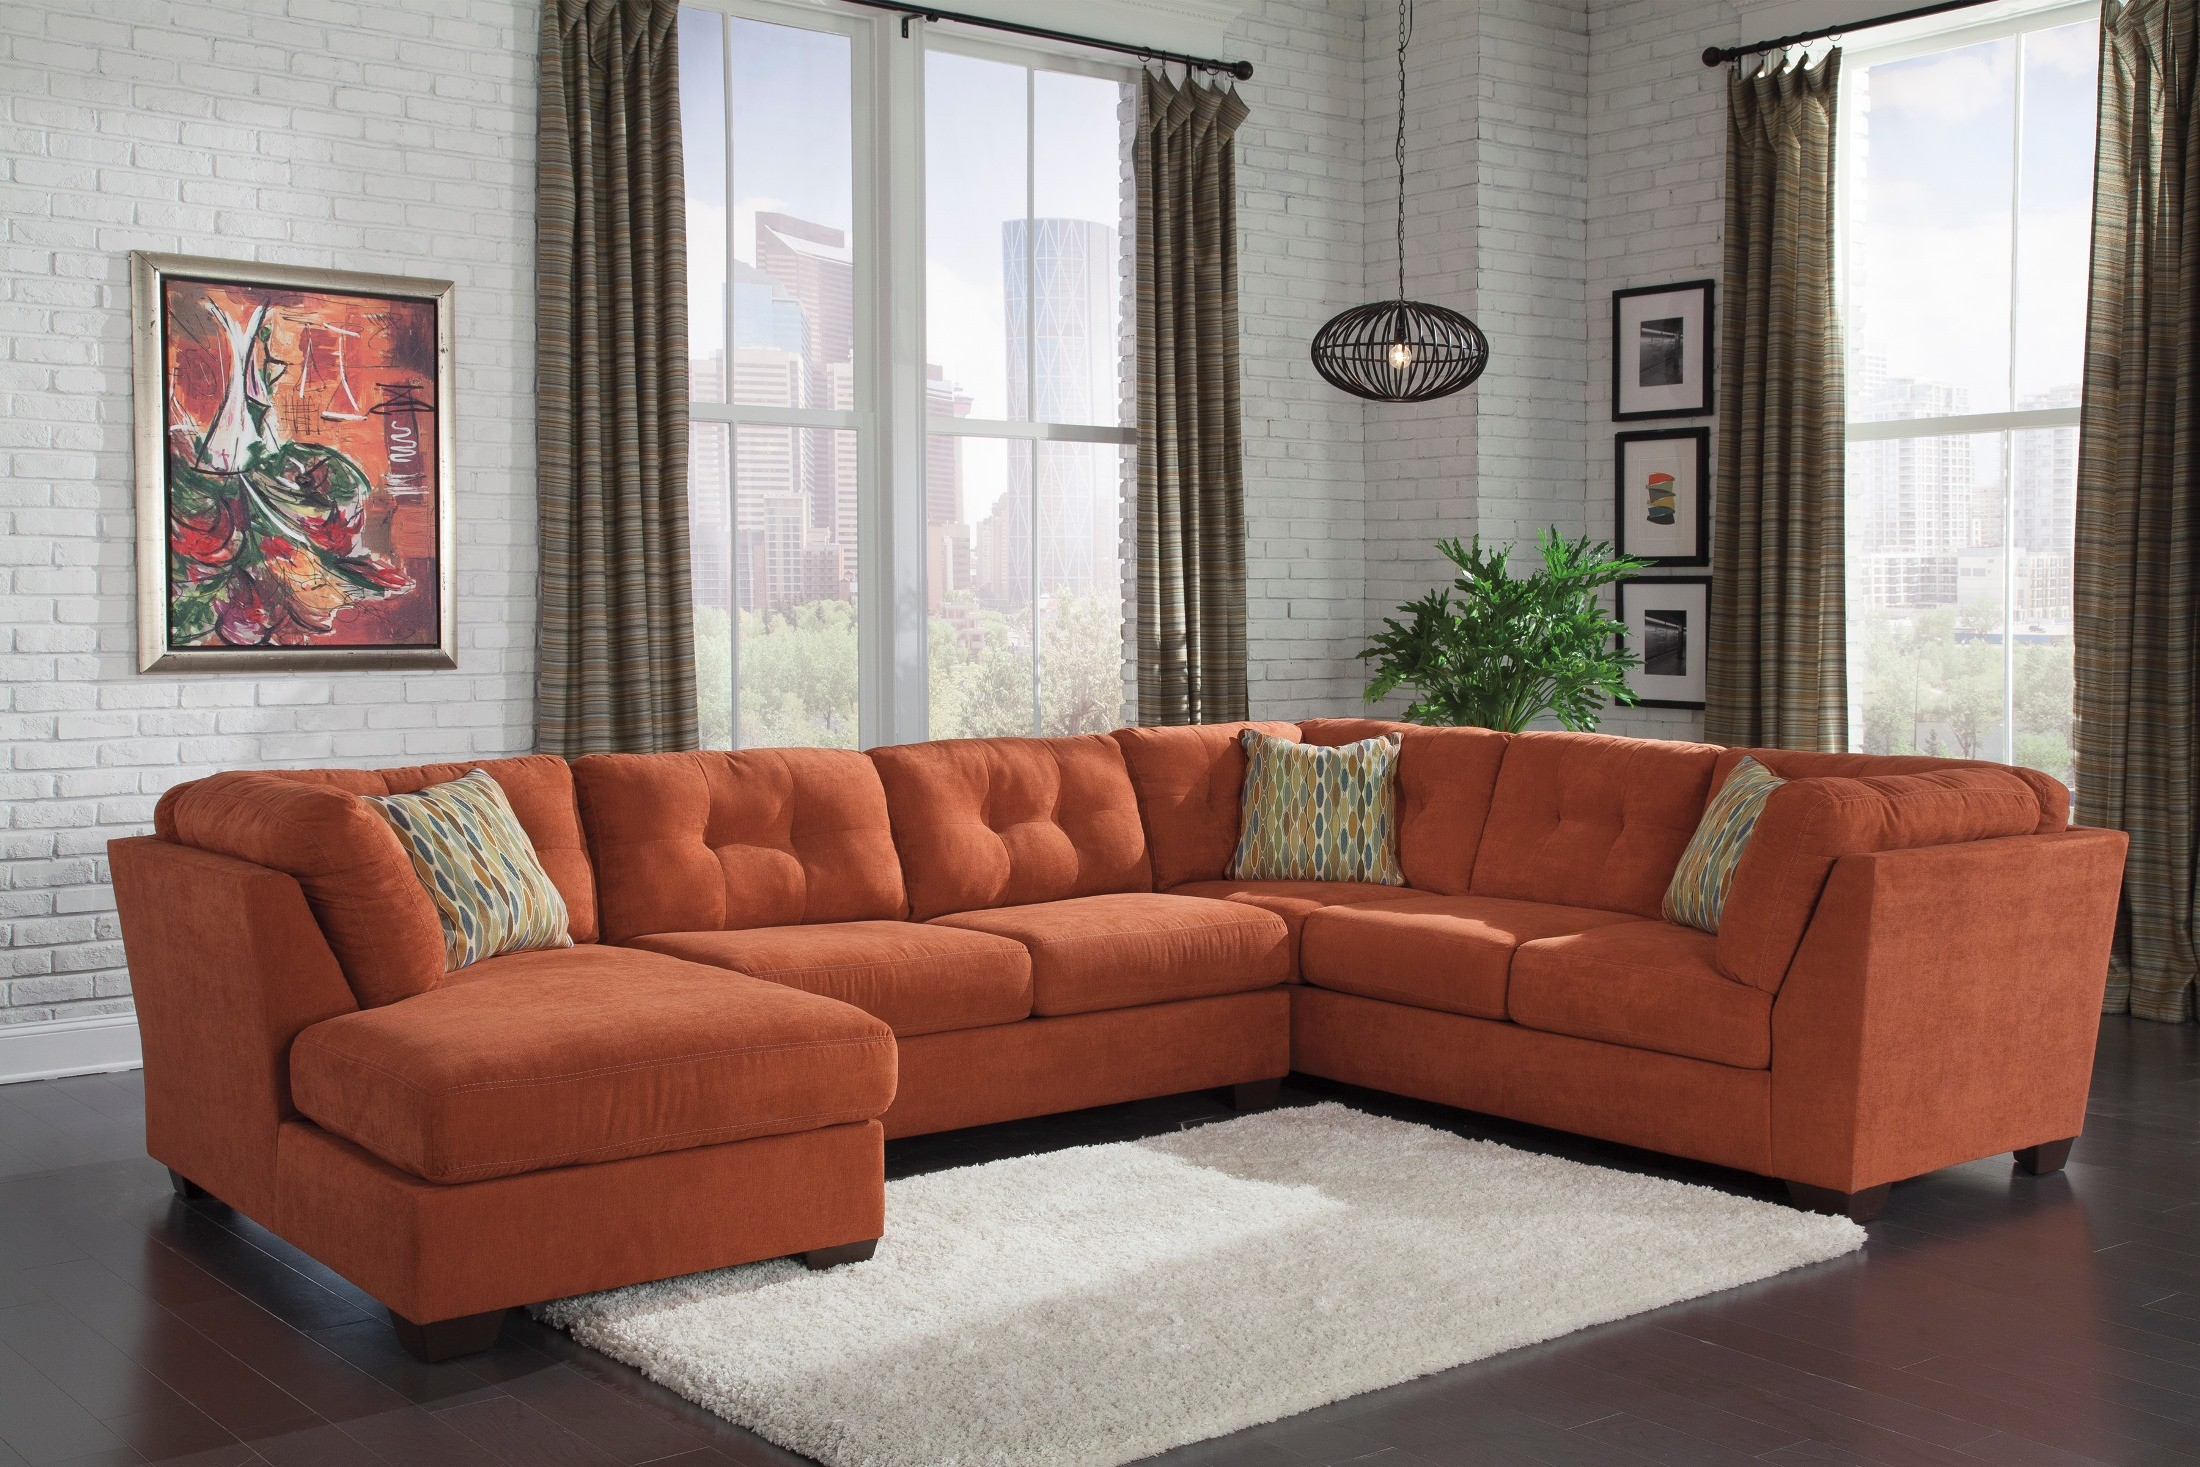 Delta City Rust Laf Sectional From Ashley 19701 16 34 38 Coleman Furniture